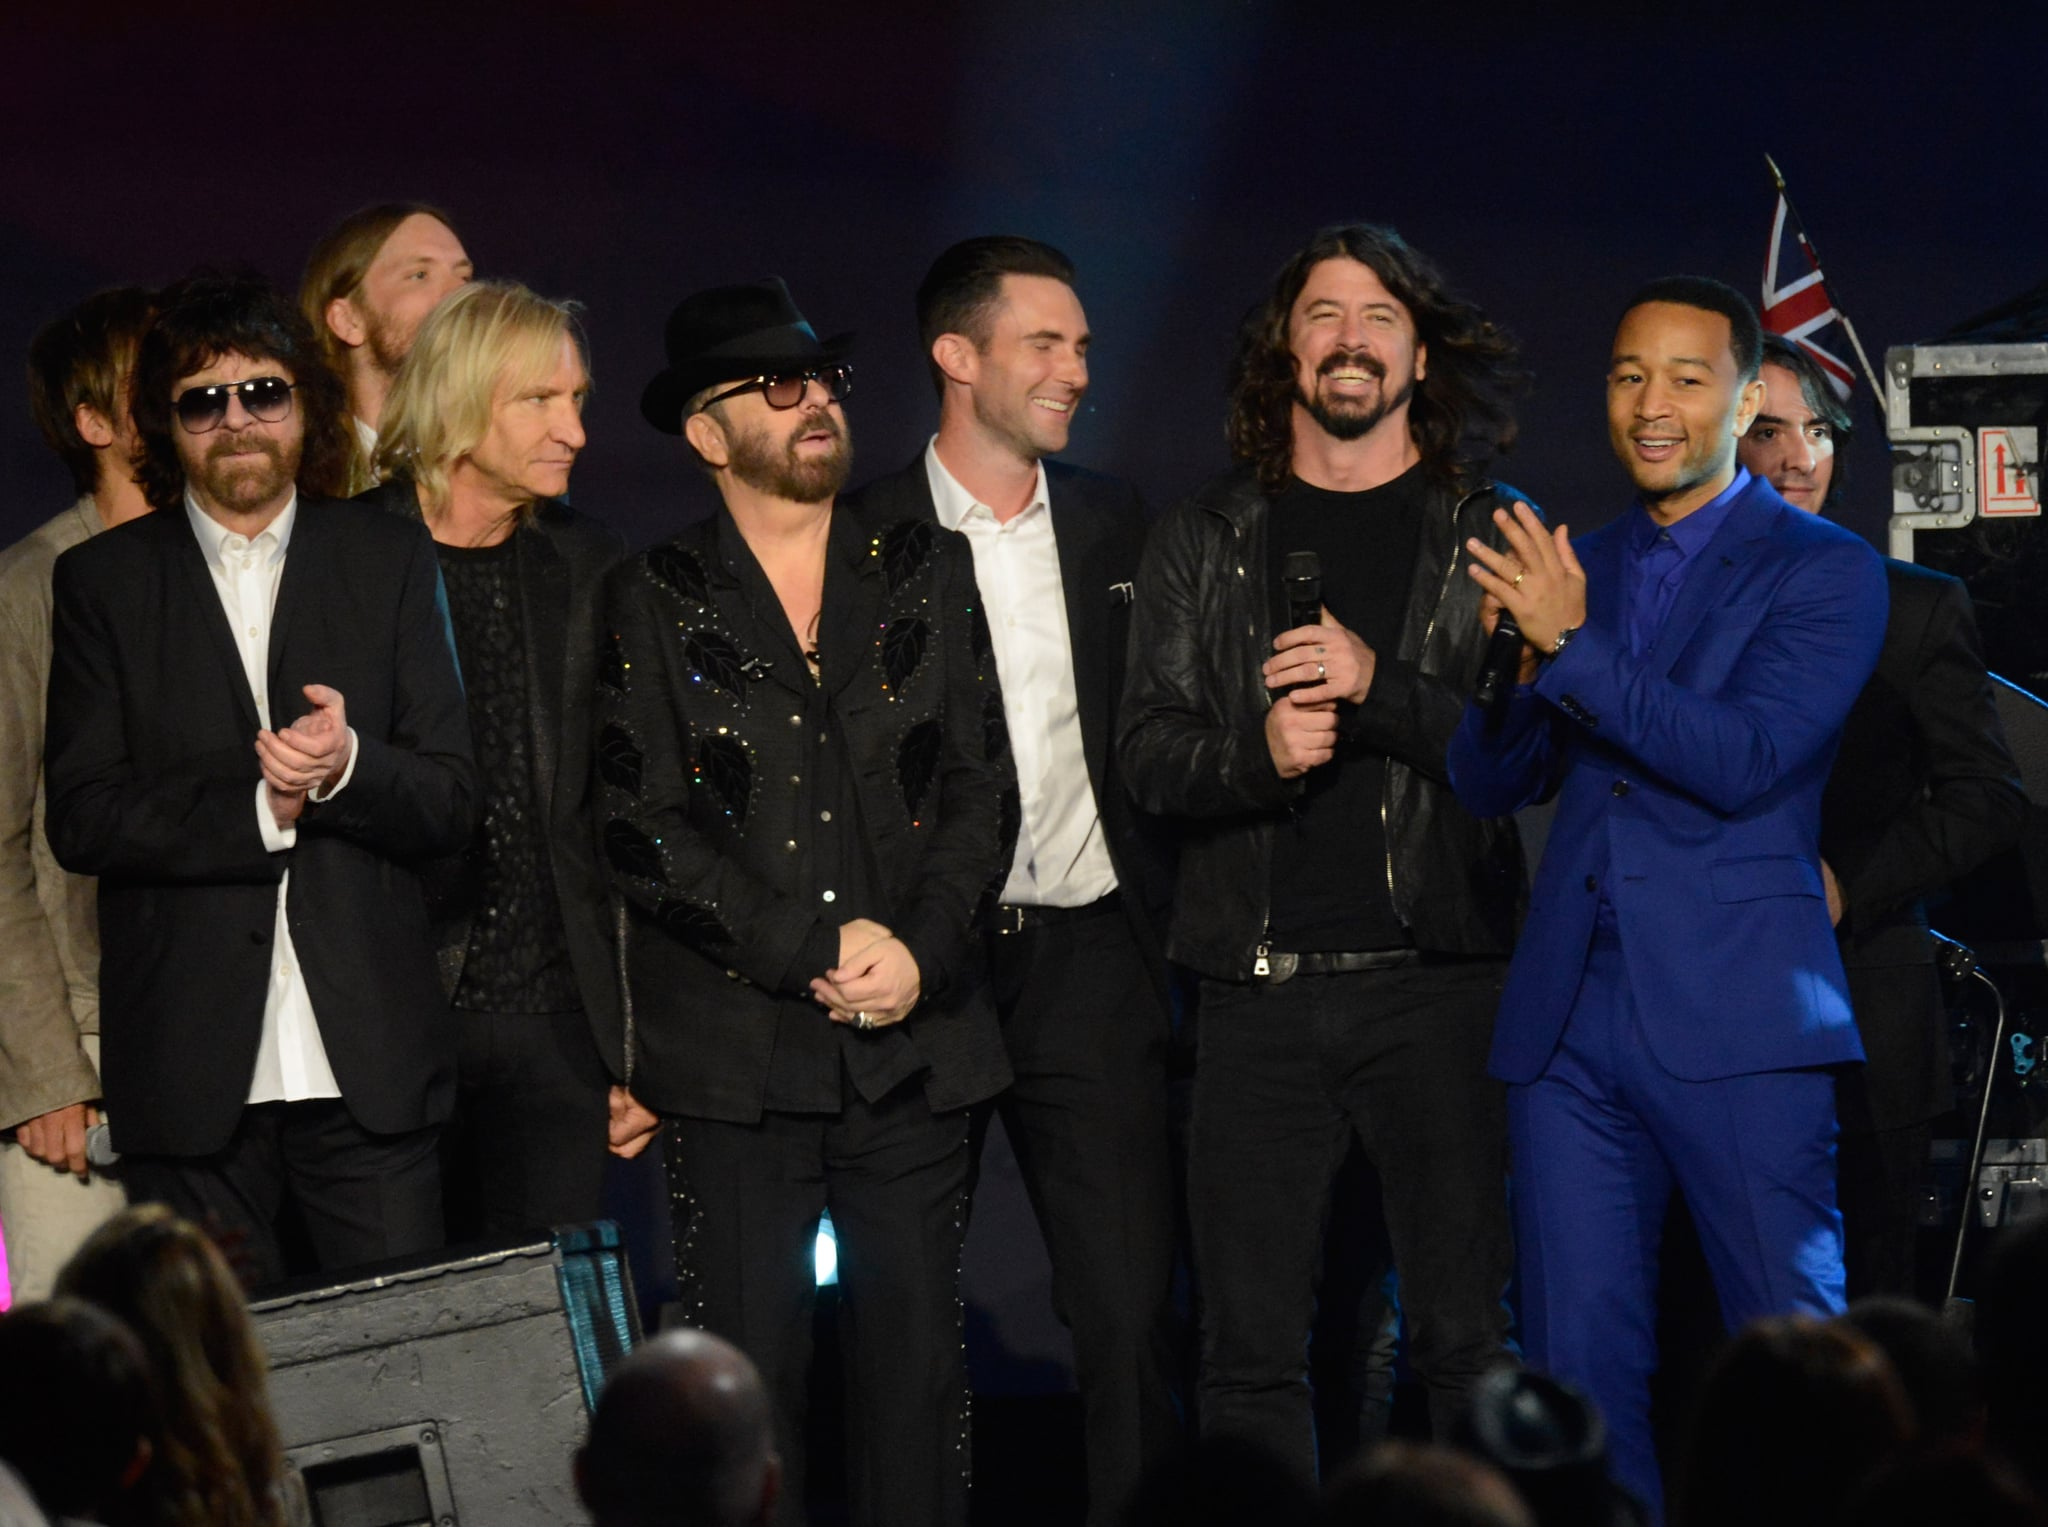 Adam Levine, Dave Grohl, and John Legend met up with other music legends on stage.